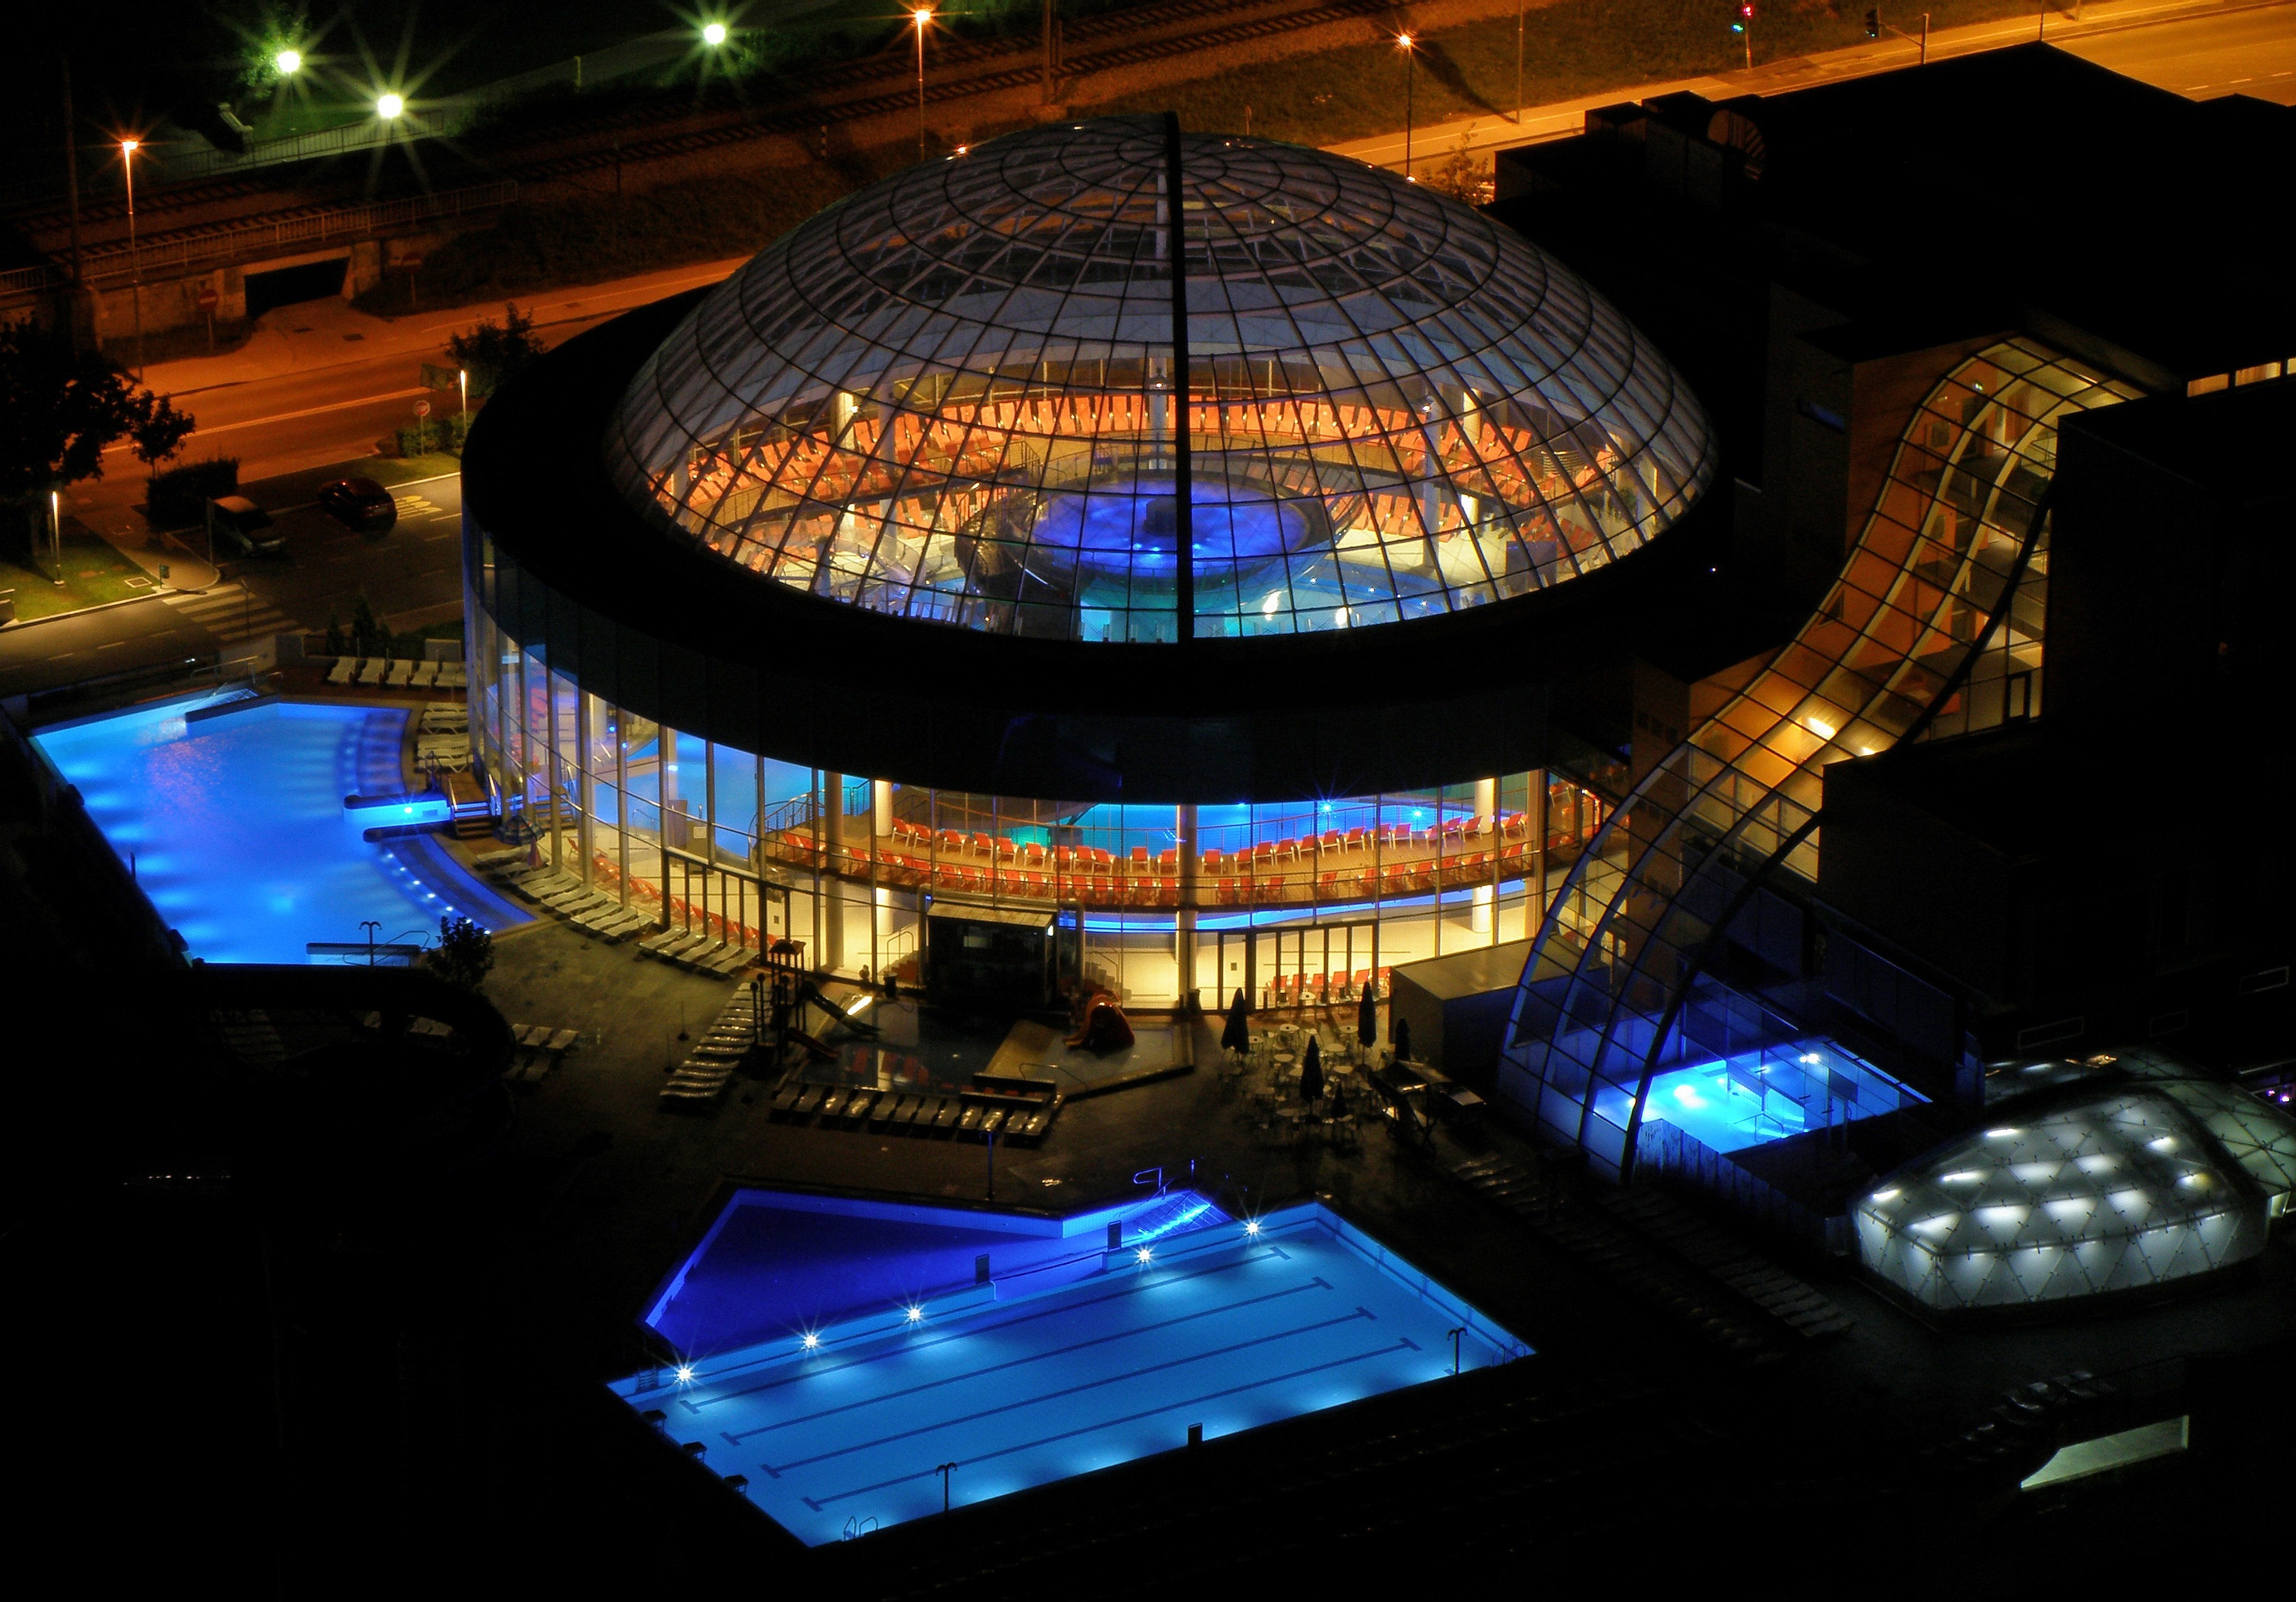 Aquapark - at night